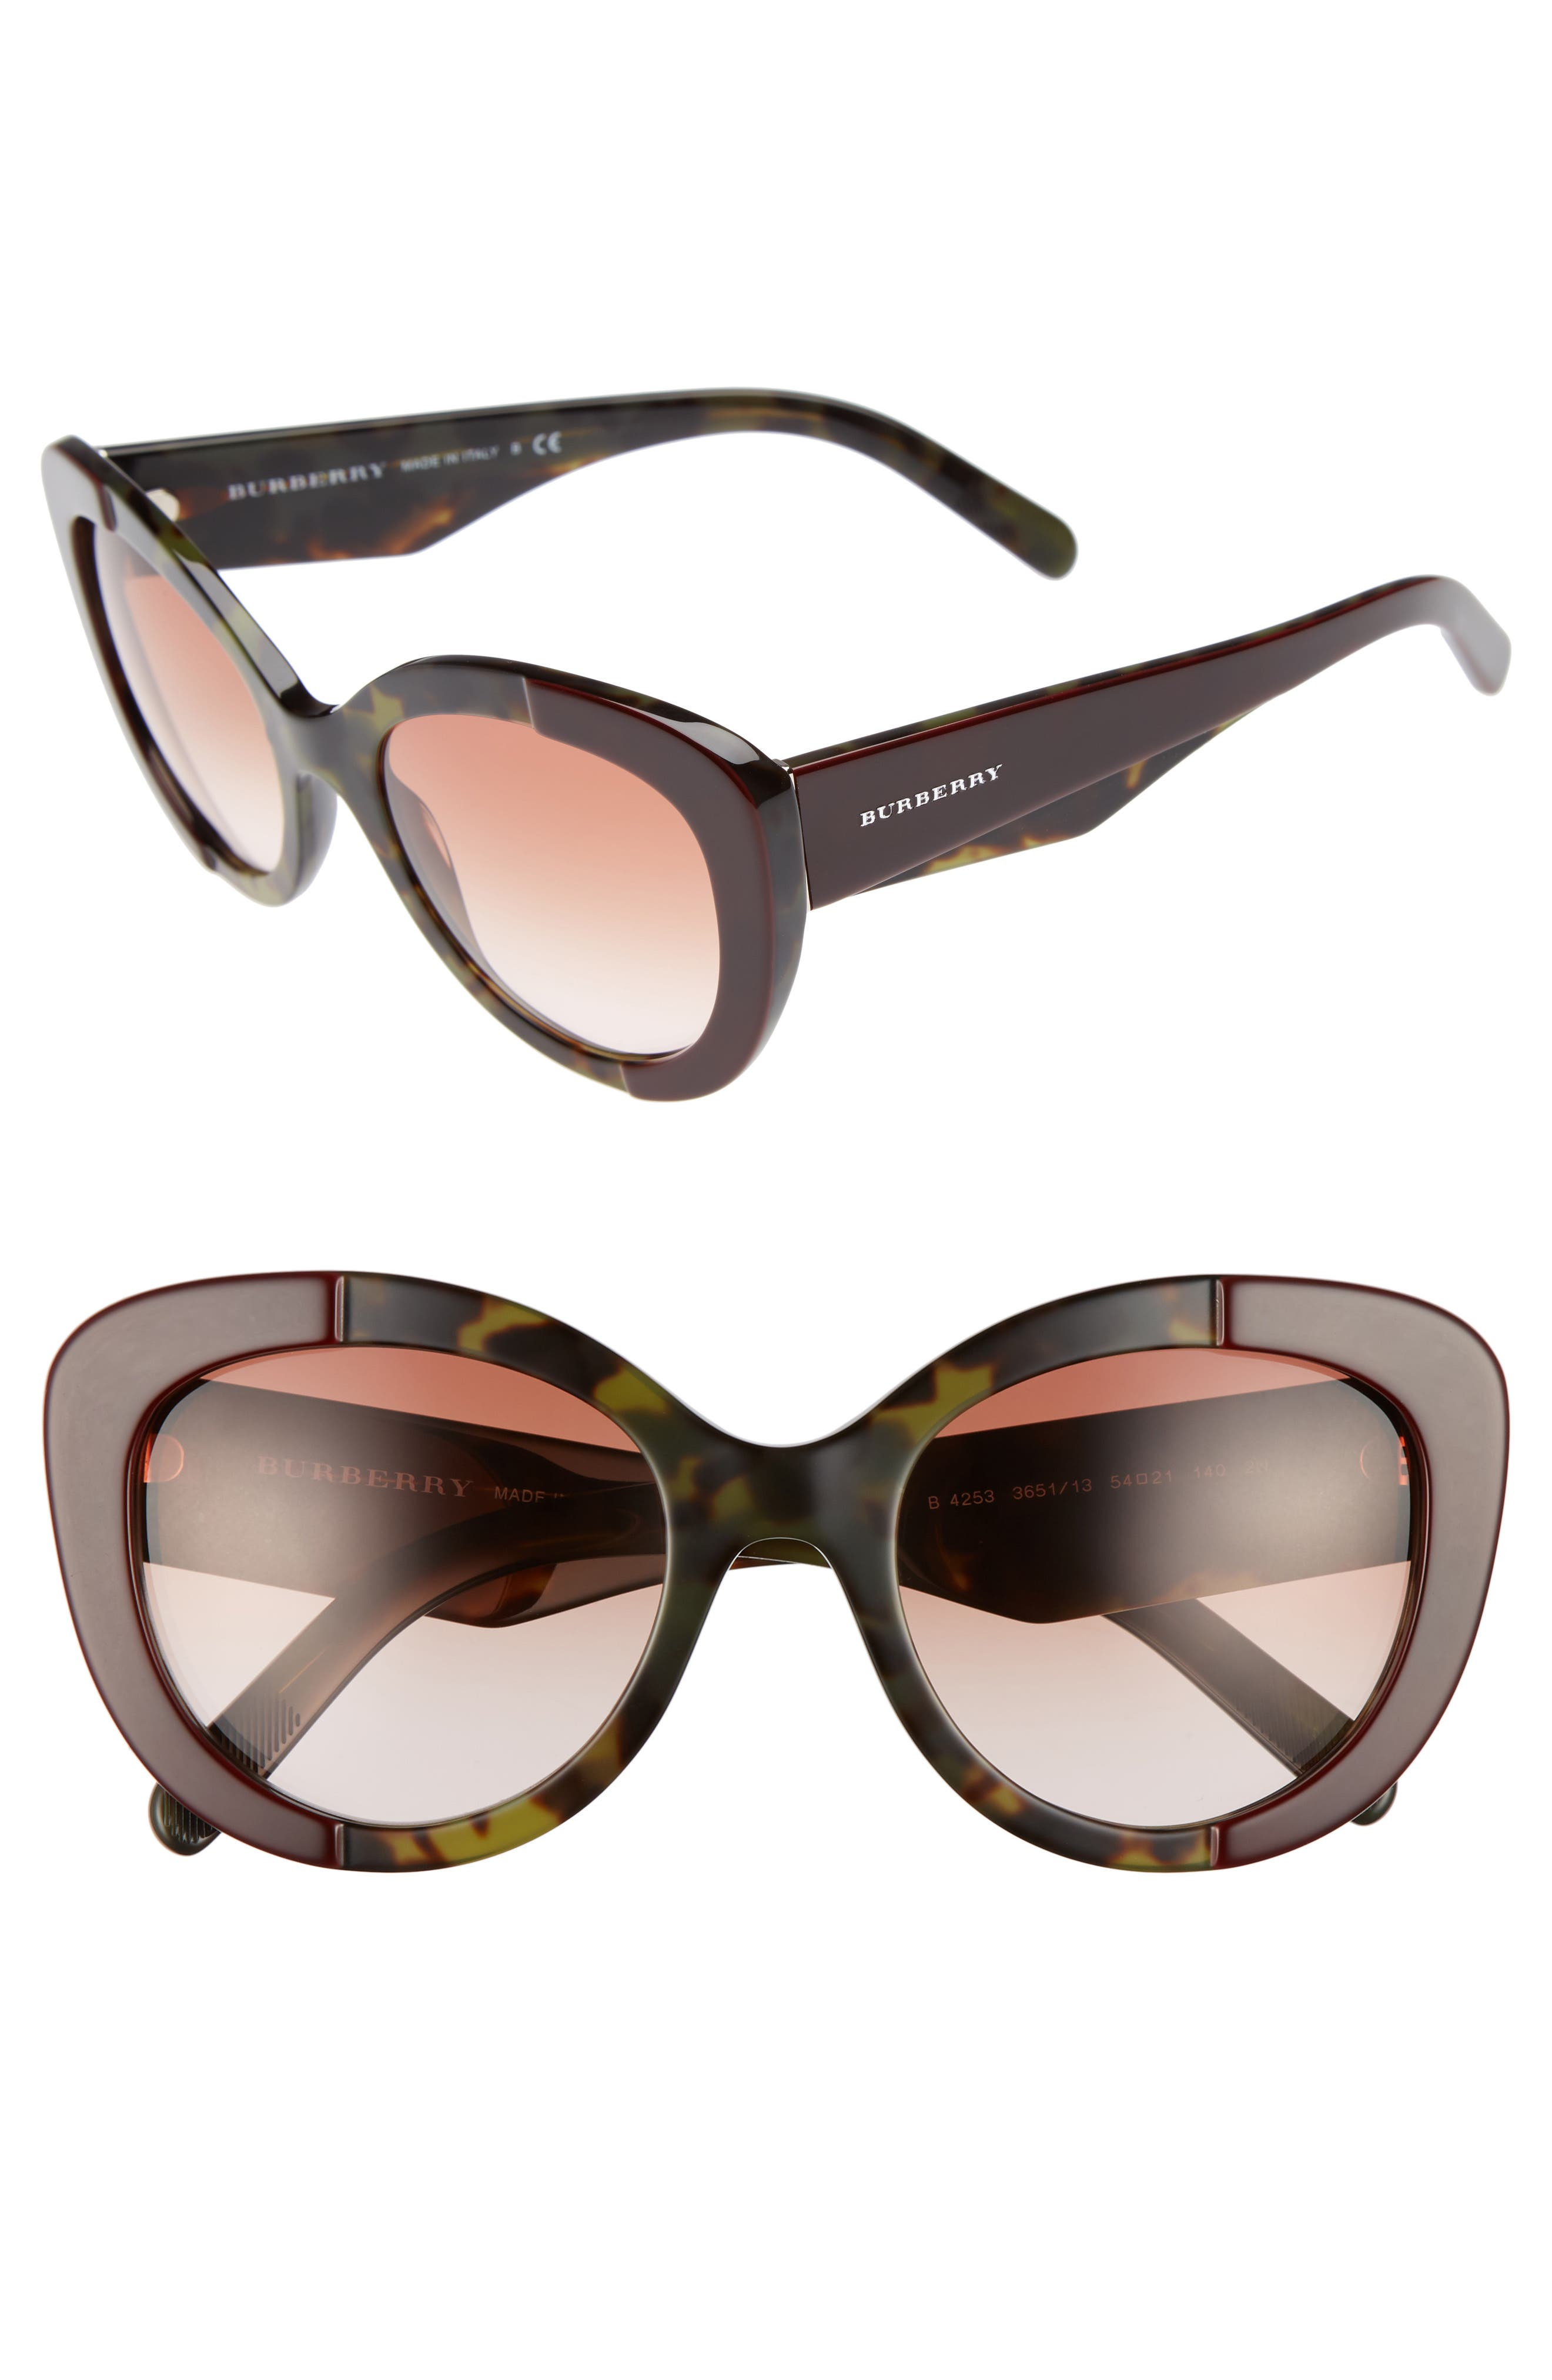 Burberry 54mm Gradient Butterfly Sunglasses